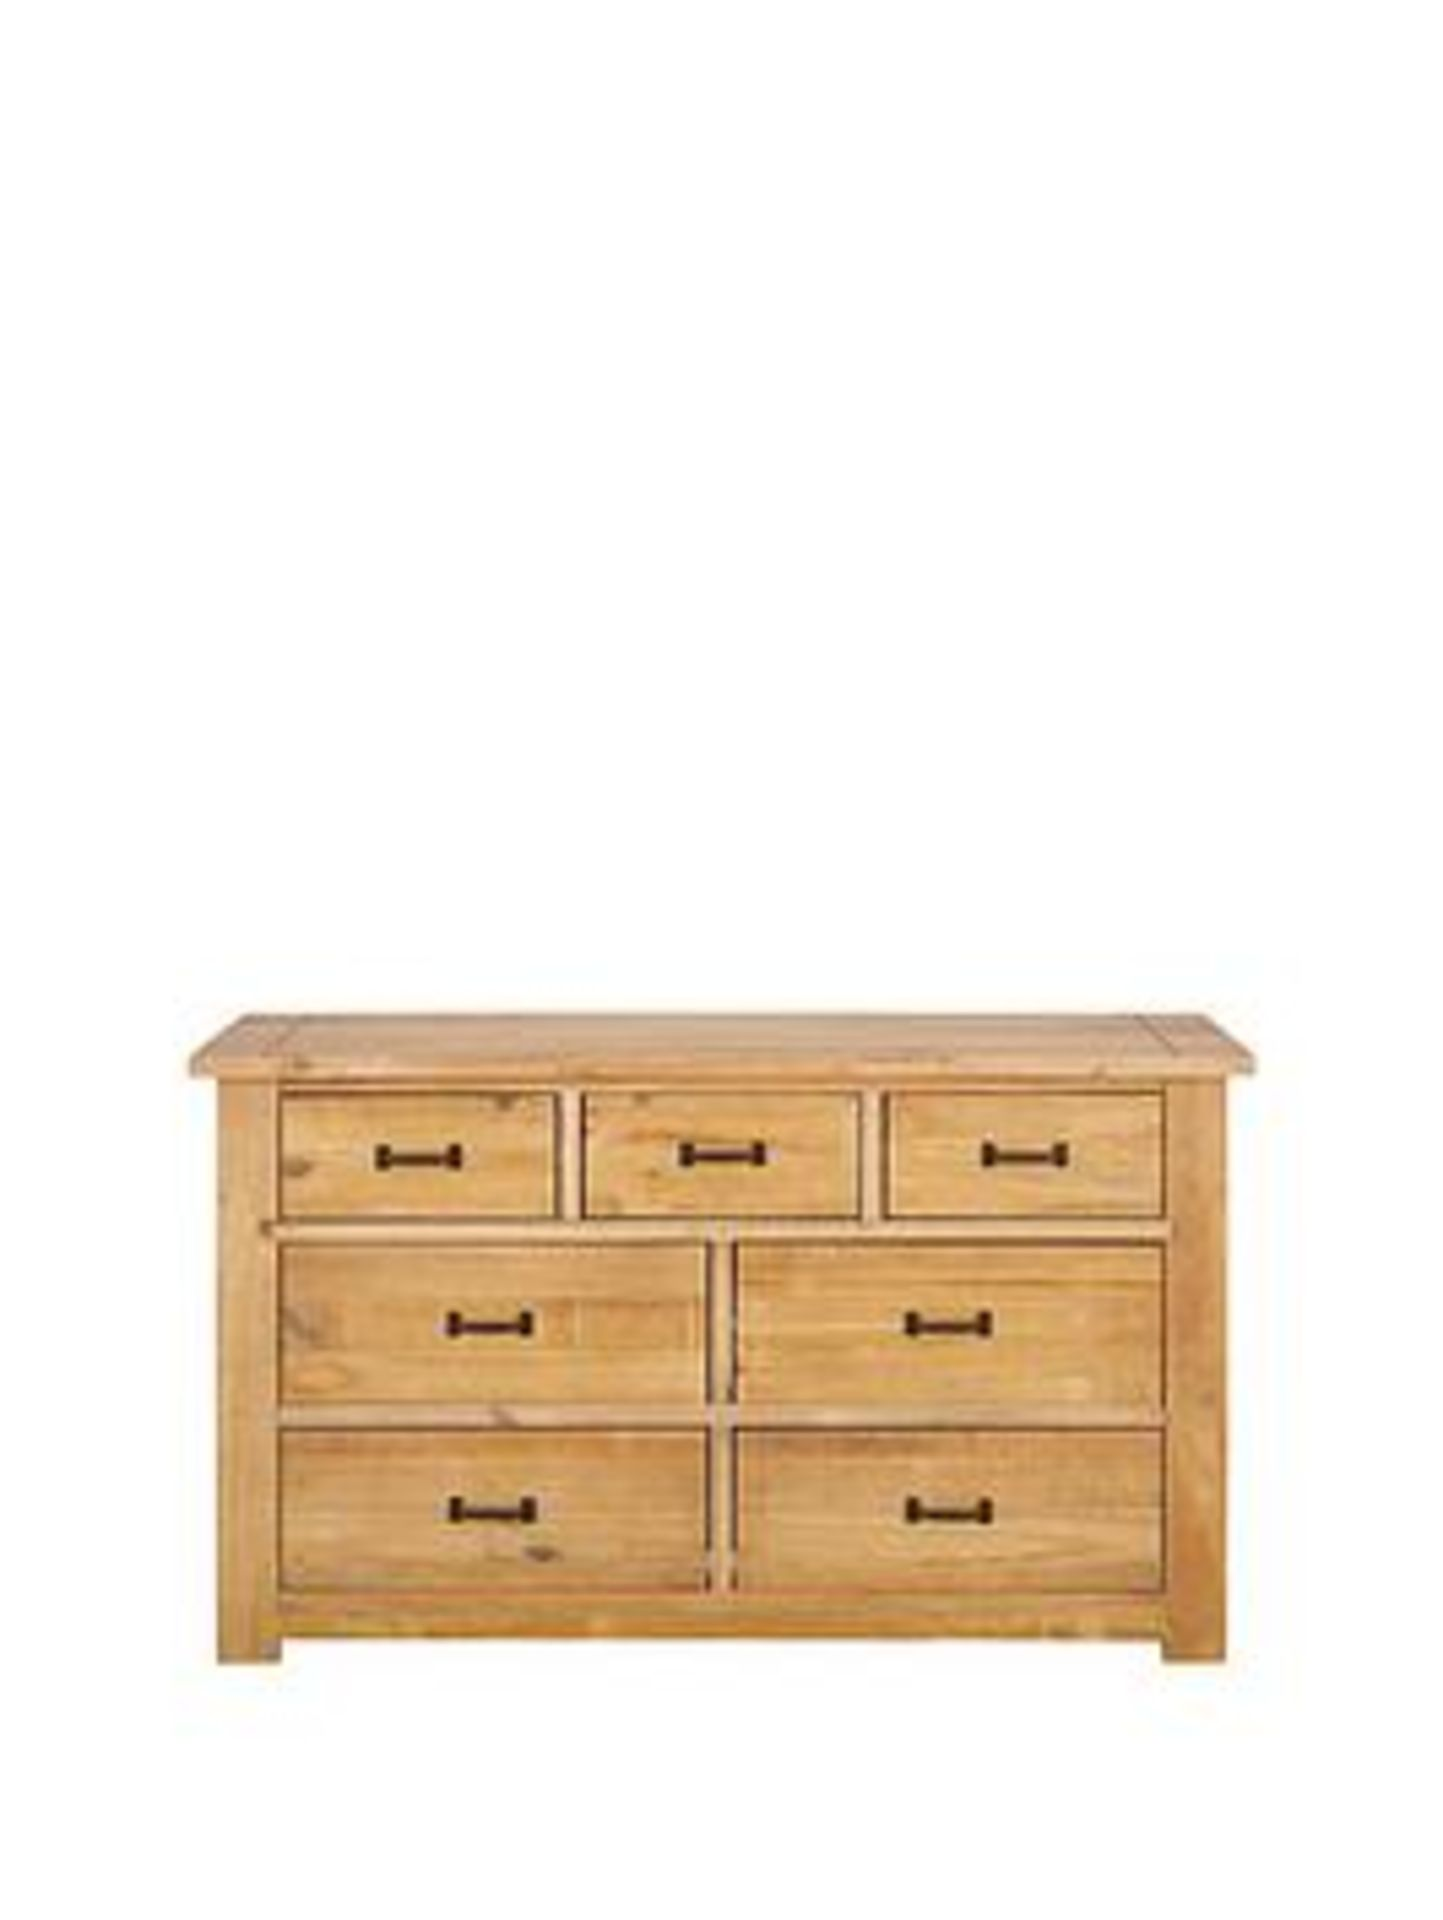 Lot 64 - Boxed Item Albion 7 Drawers Chest [Pine] 77X125X40Cm rrp, £474.0